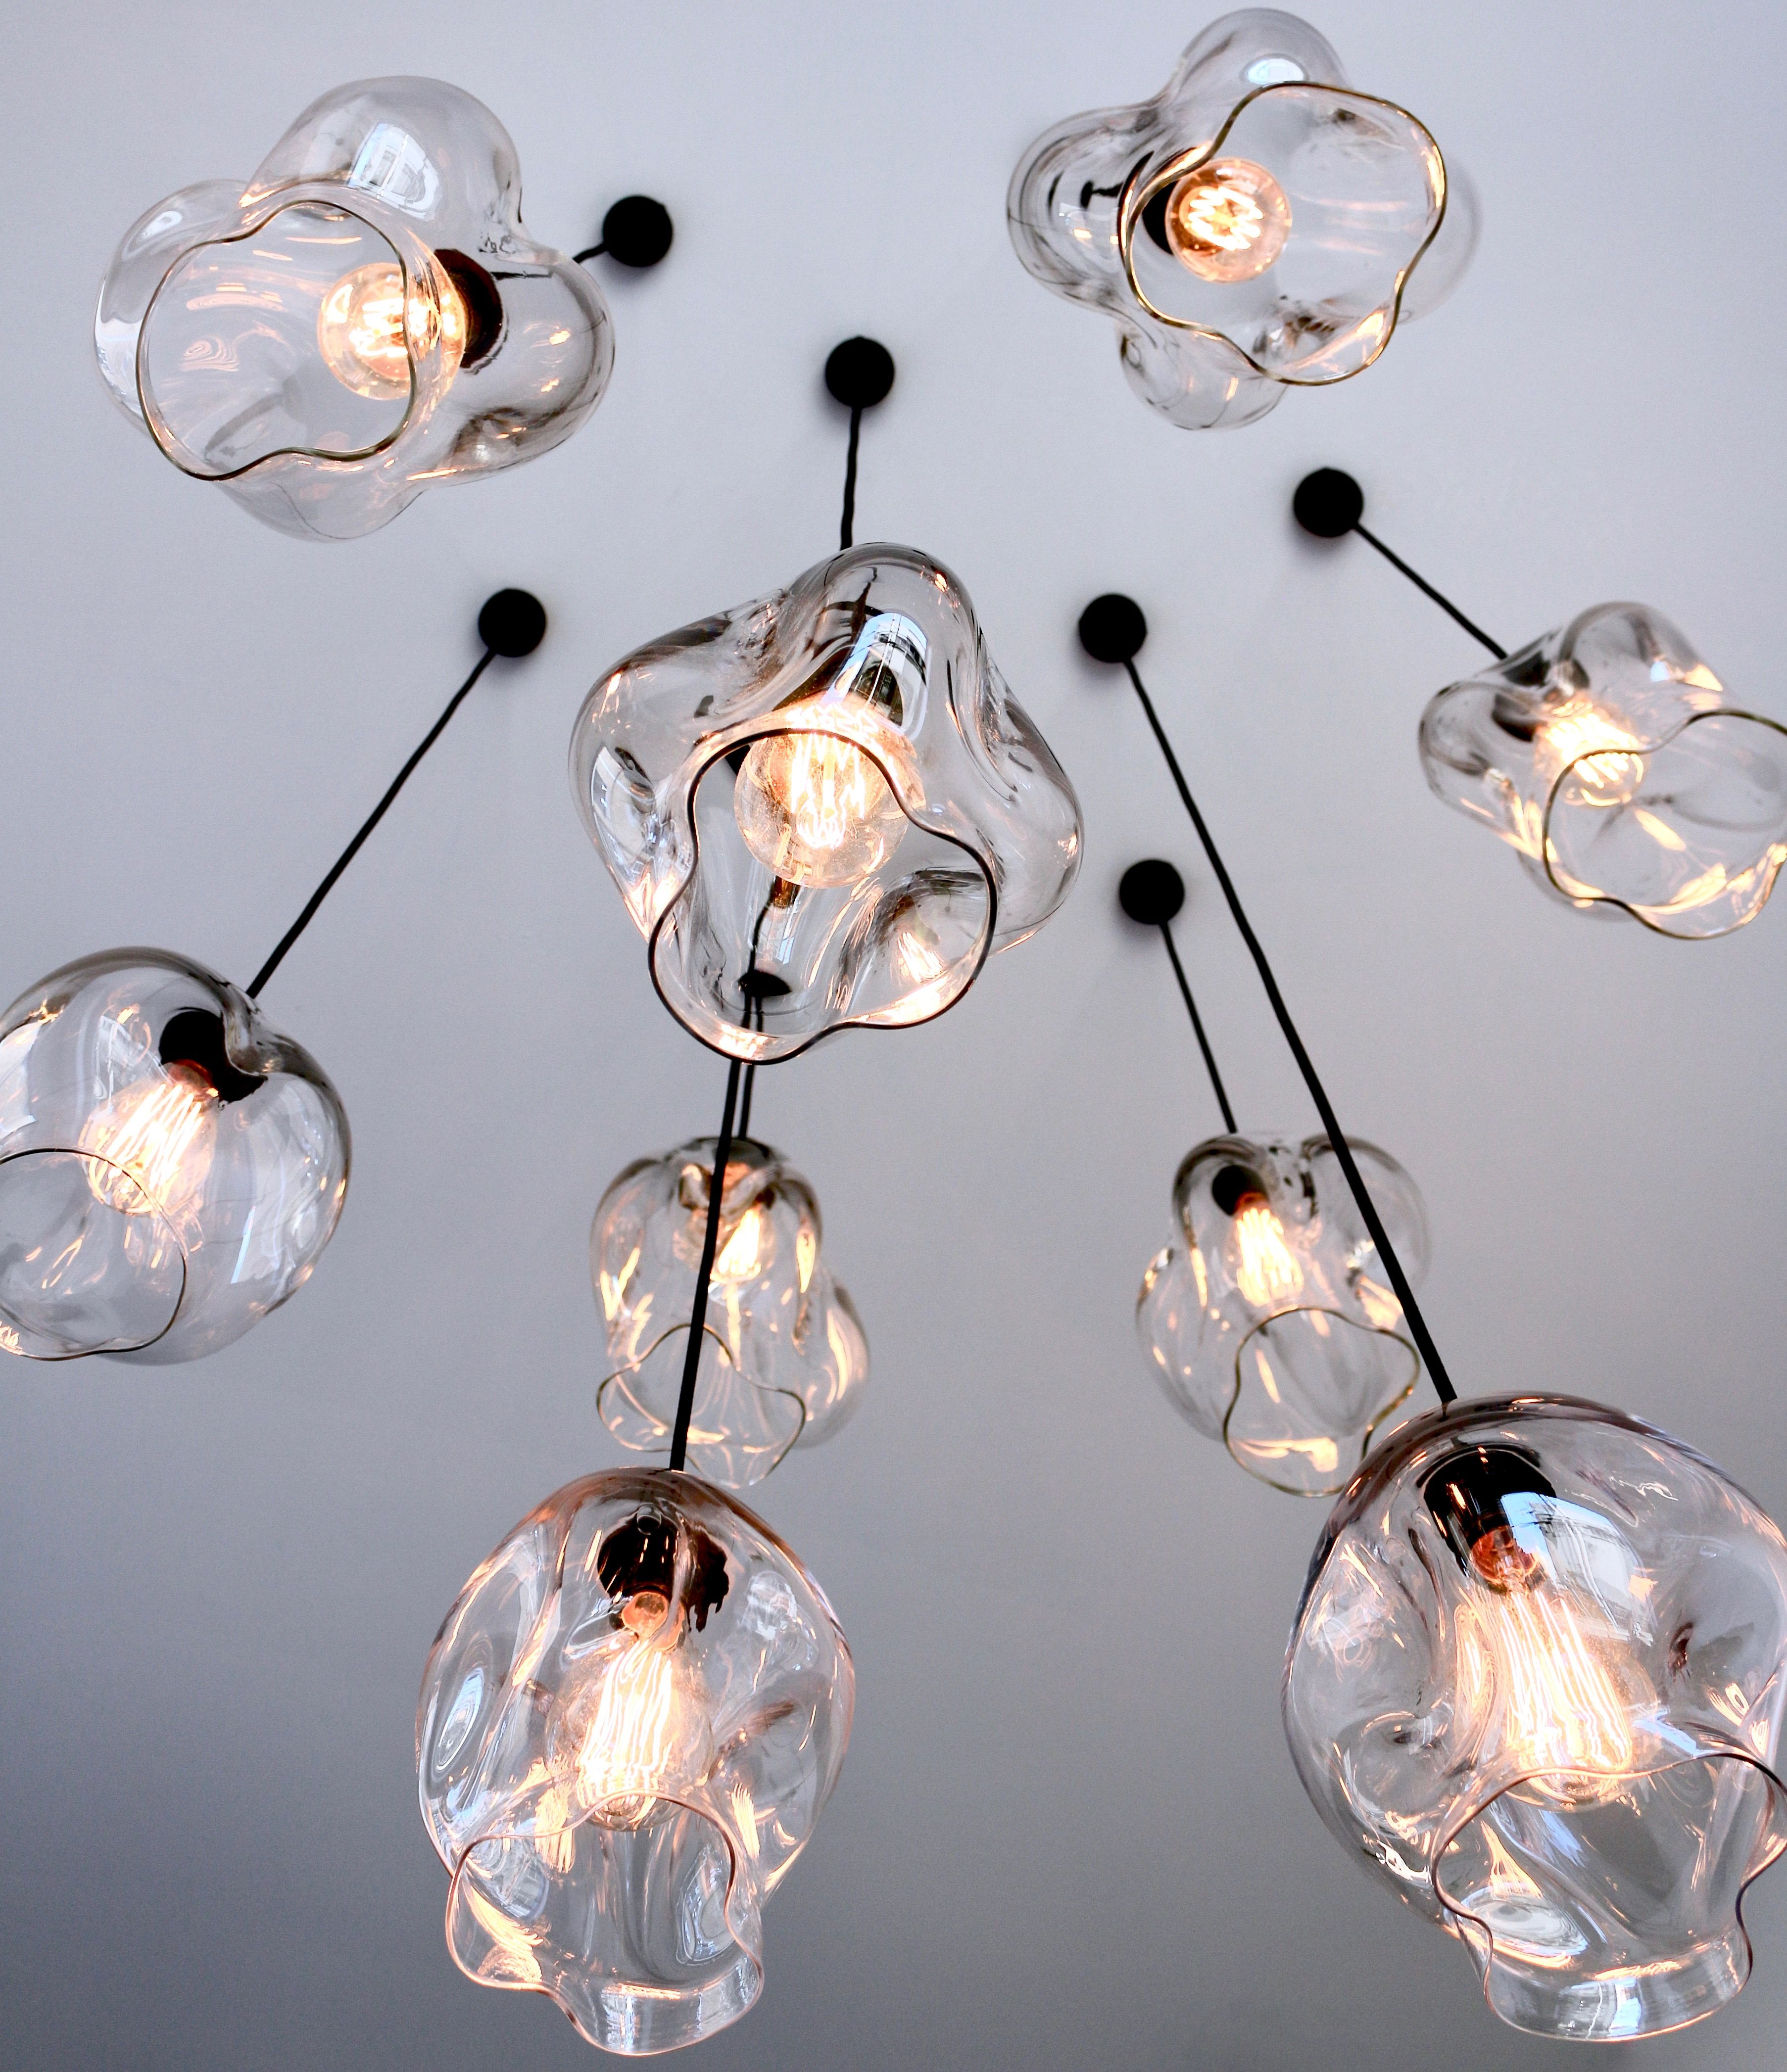 hand blown glass pendant lighting. Pendant Lights. Designed And Made By Oliver Höglund. Hand-blown Glass Give Your Empty Stairwell Or Entrance Void A One Of Kind Statement Hand Blown Lighting